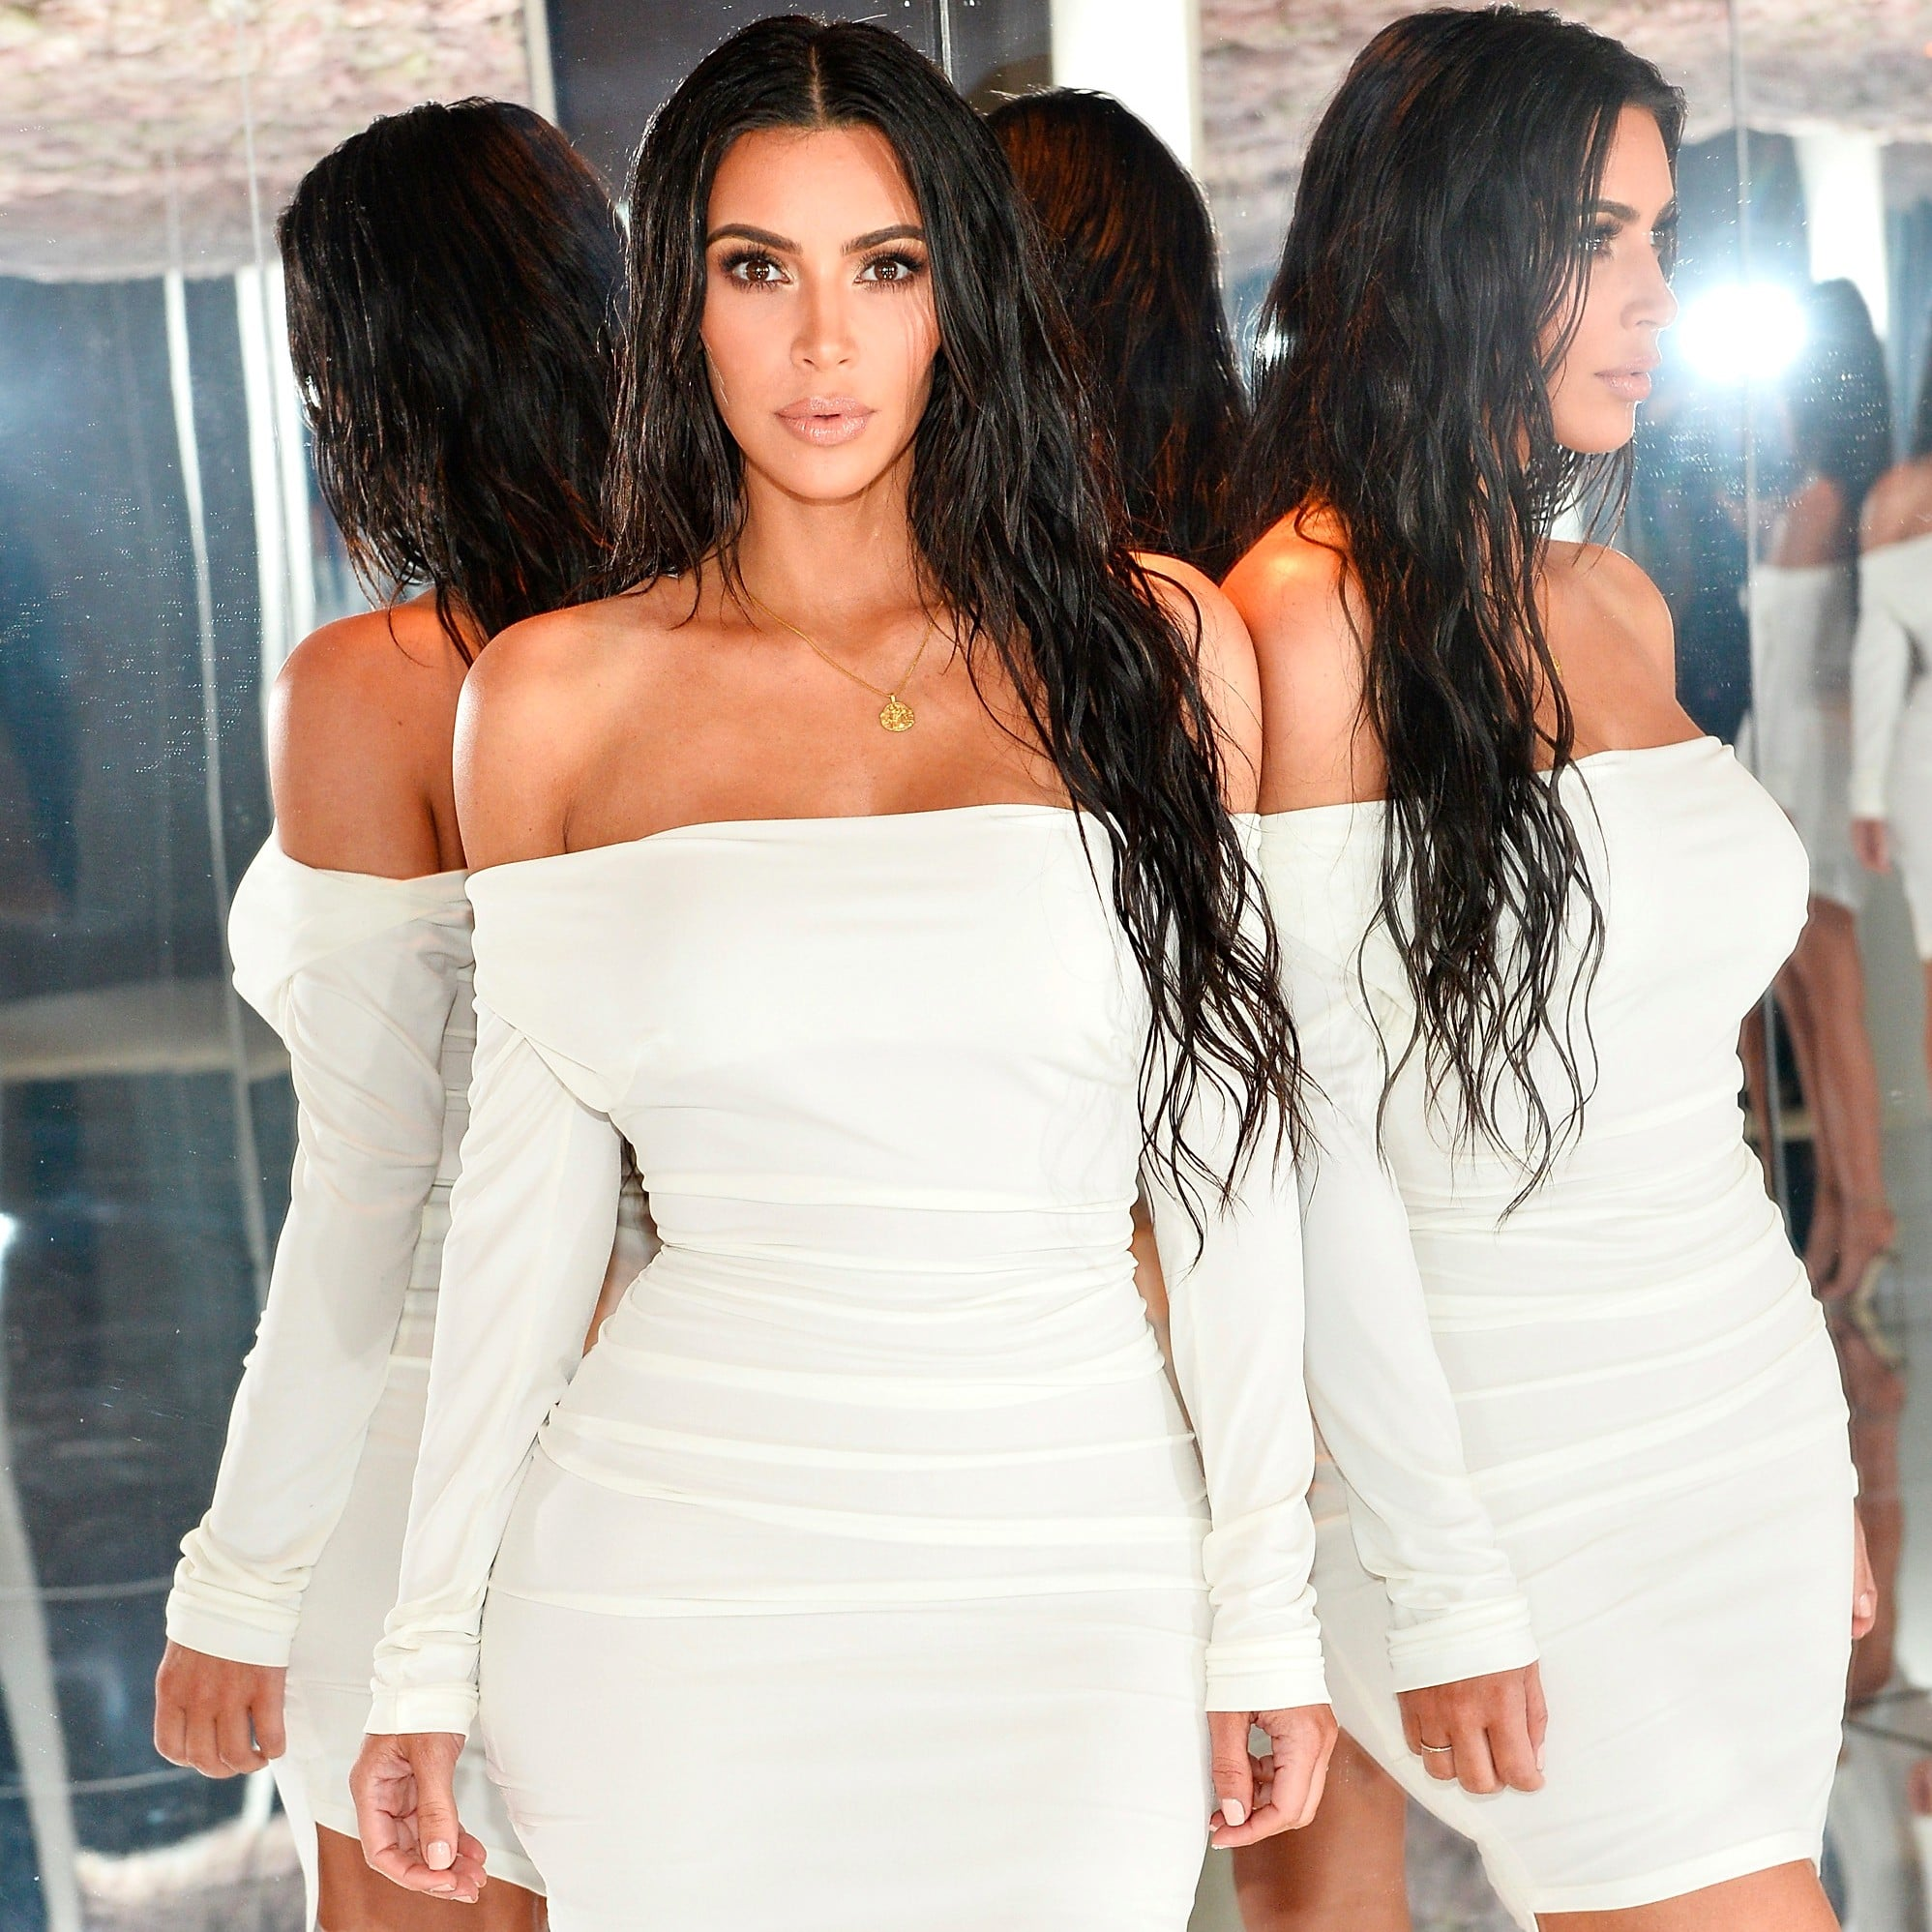 Kim Kardashian Wearing a White Dress | POPSUGAR Fashion